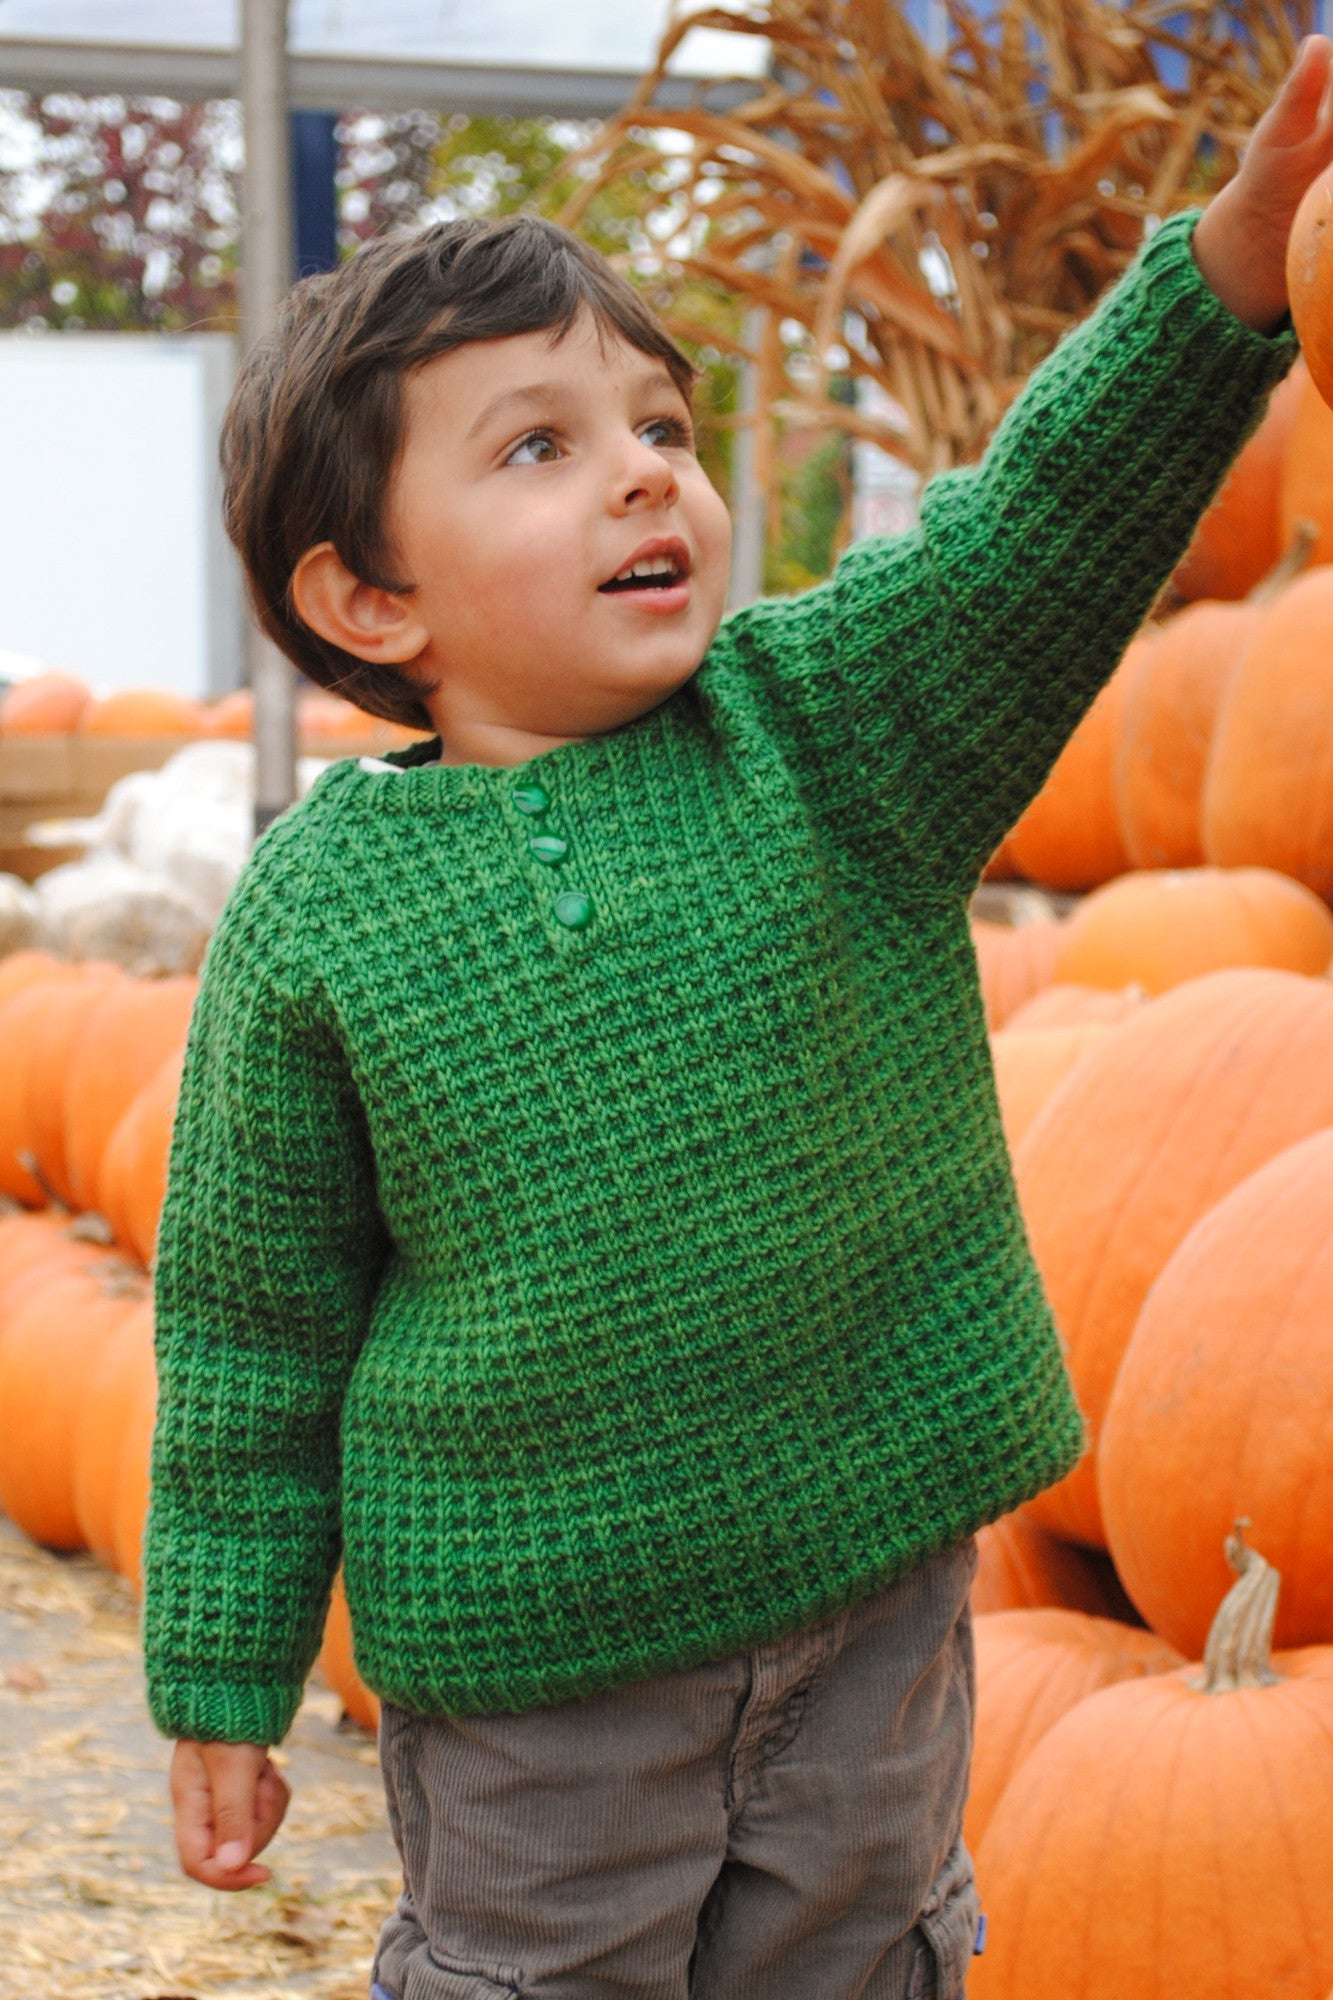 Bur Oak Raglan sweater in waffle pattern